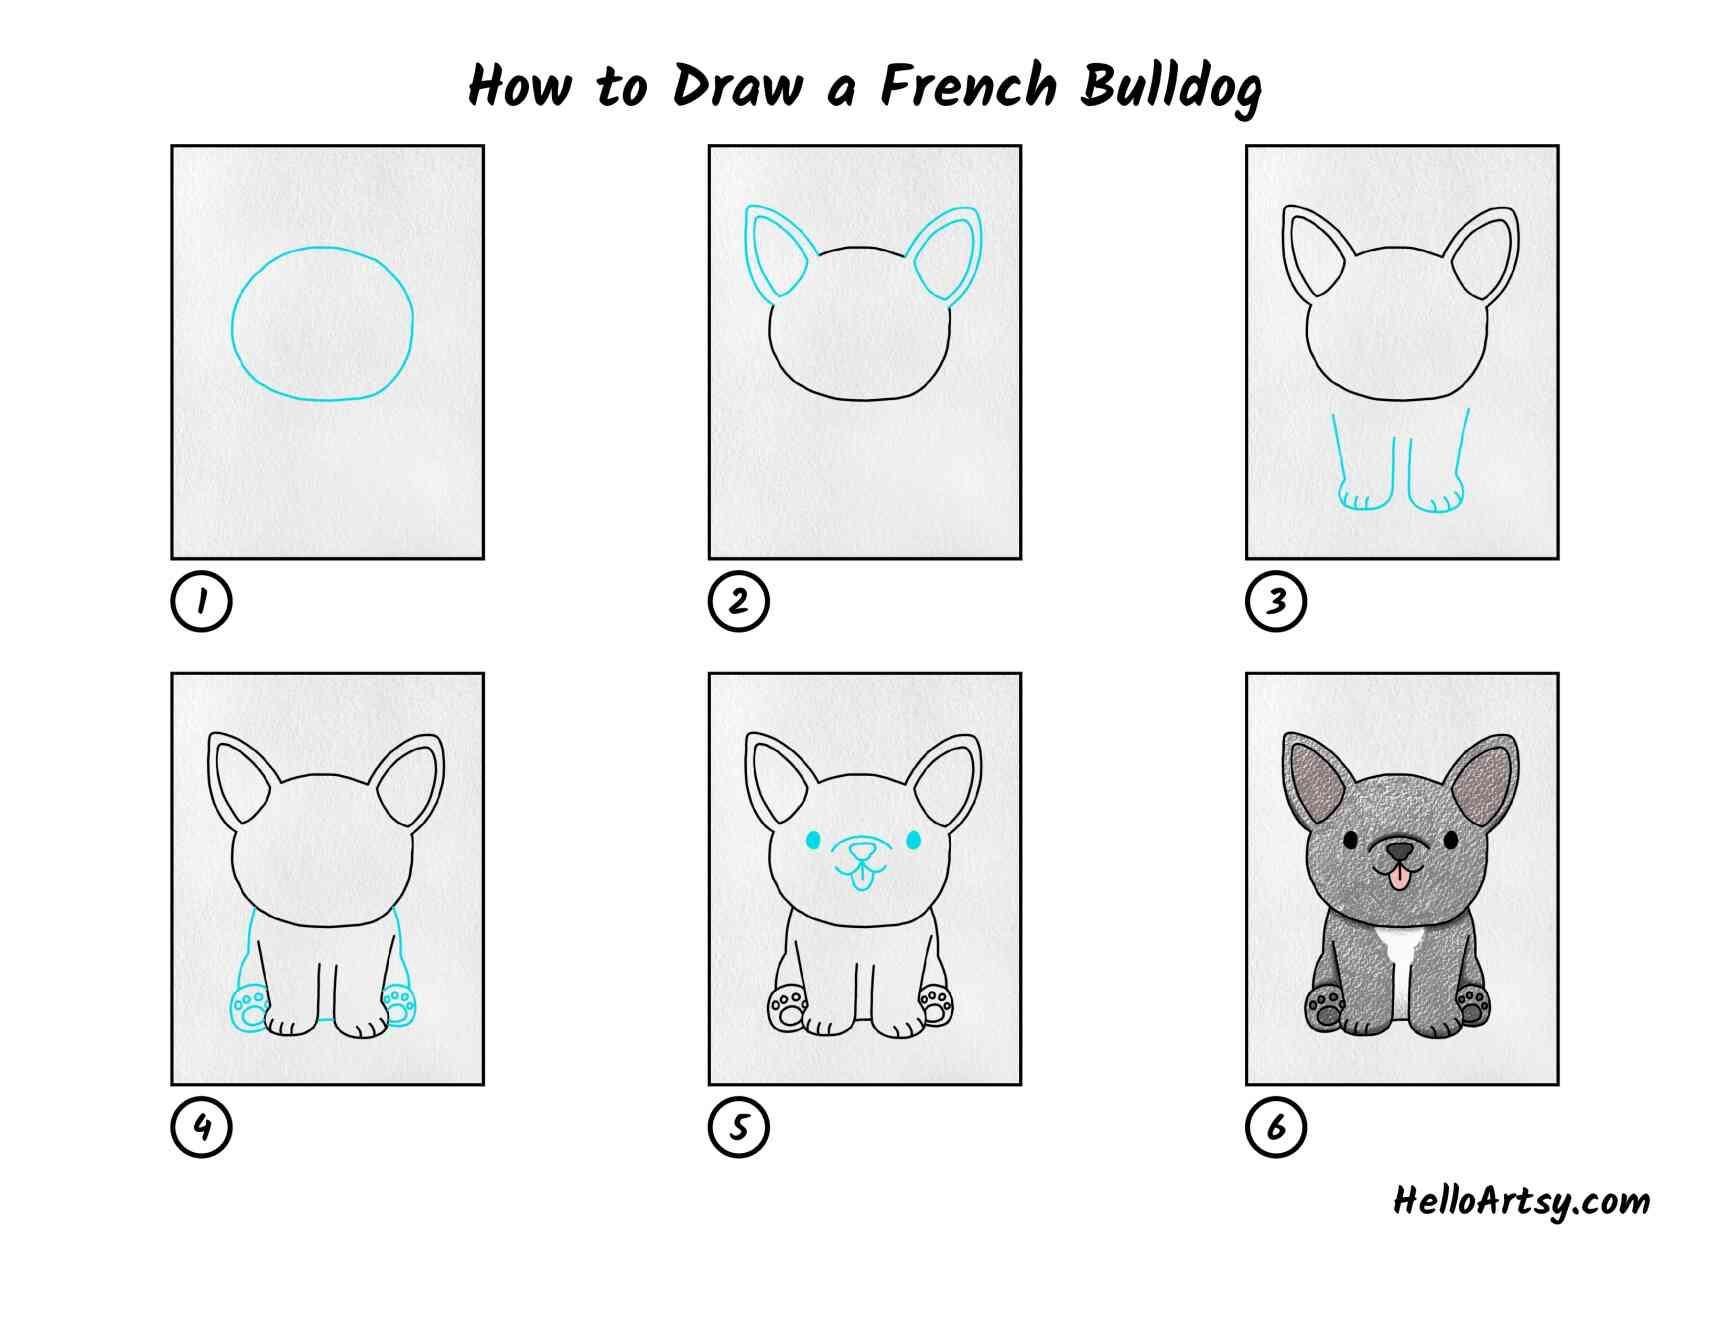 How To Draw A French Bulldog: All Steps